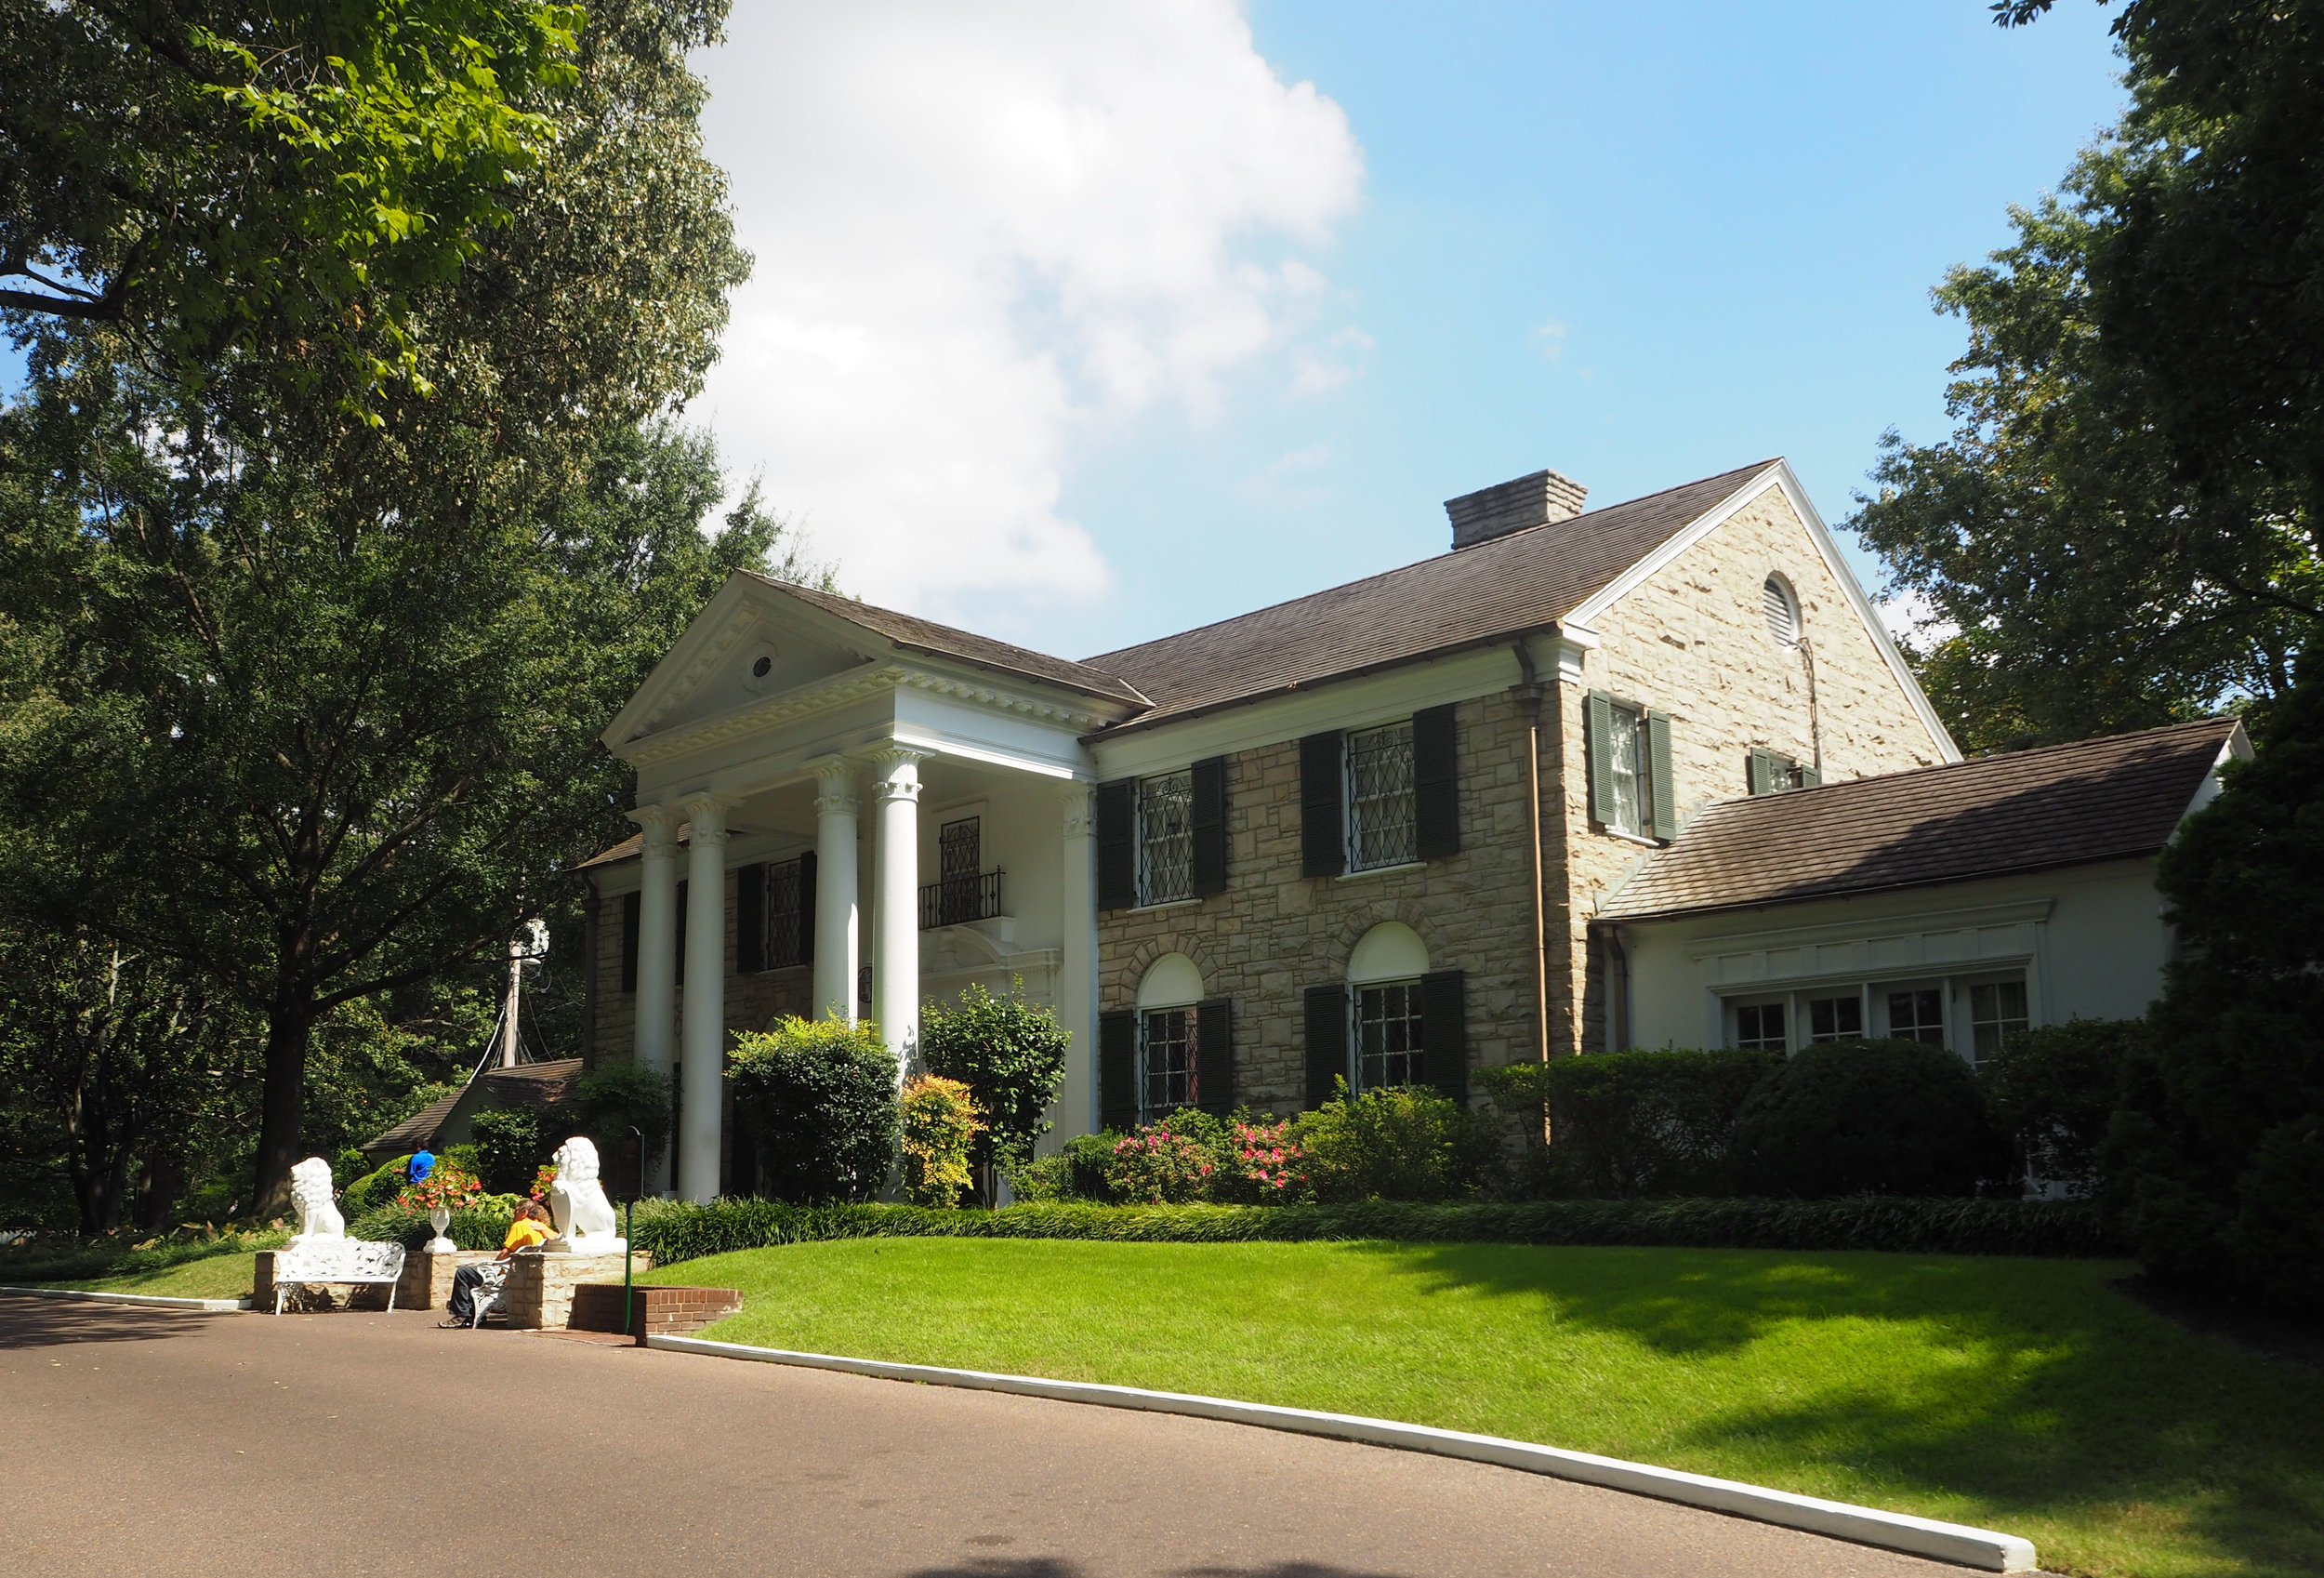 Elvis Presley | Graceland | Memphis, Tennessee. click to see more pics.